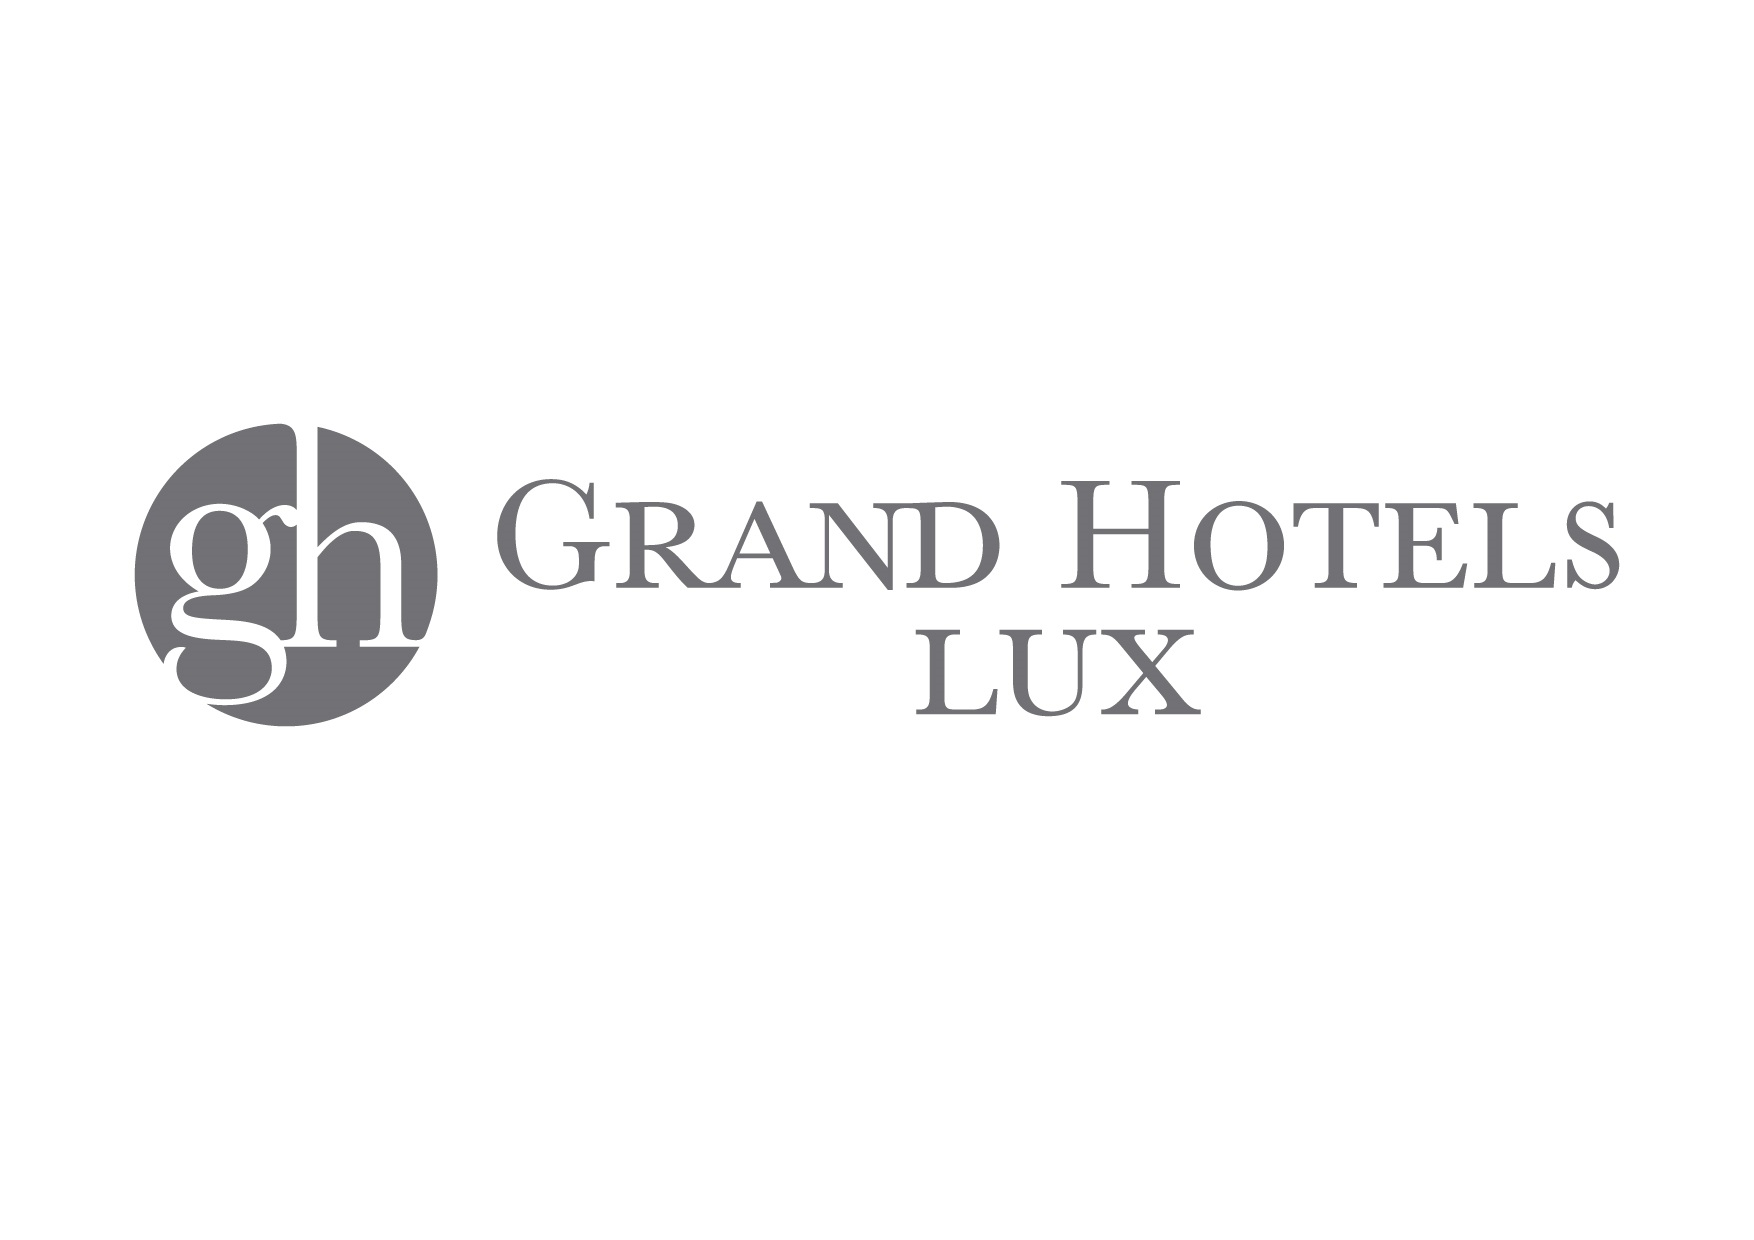 GRAND HOTELS LUX logo